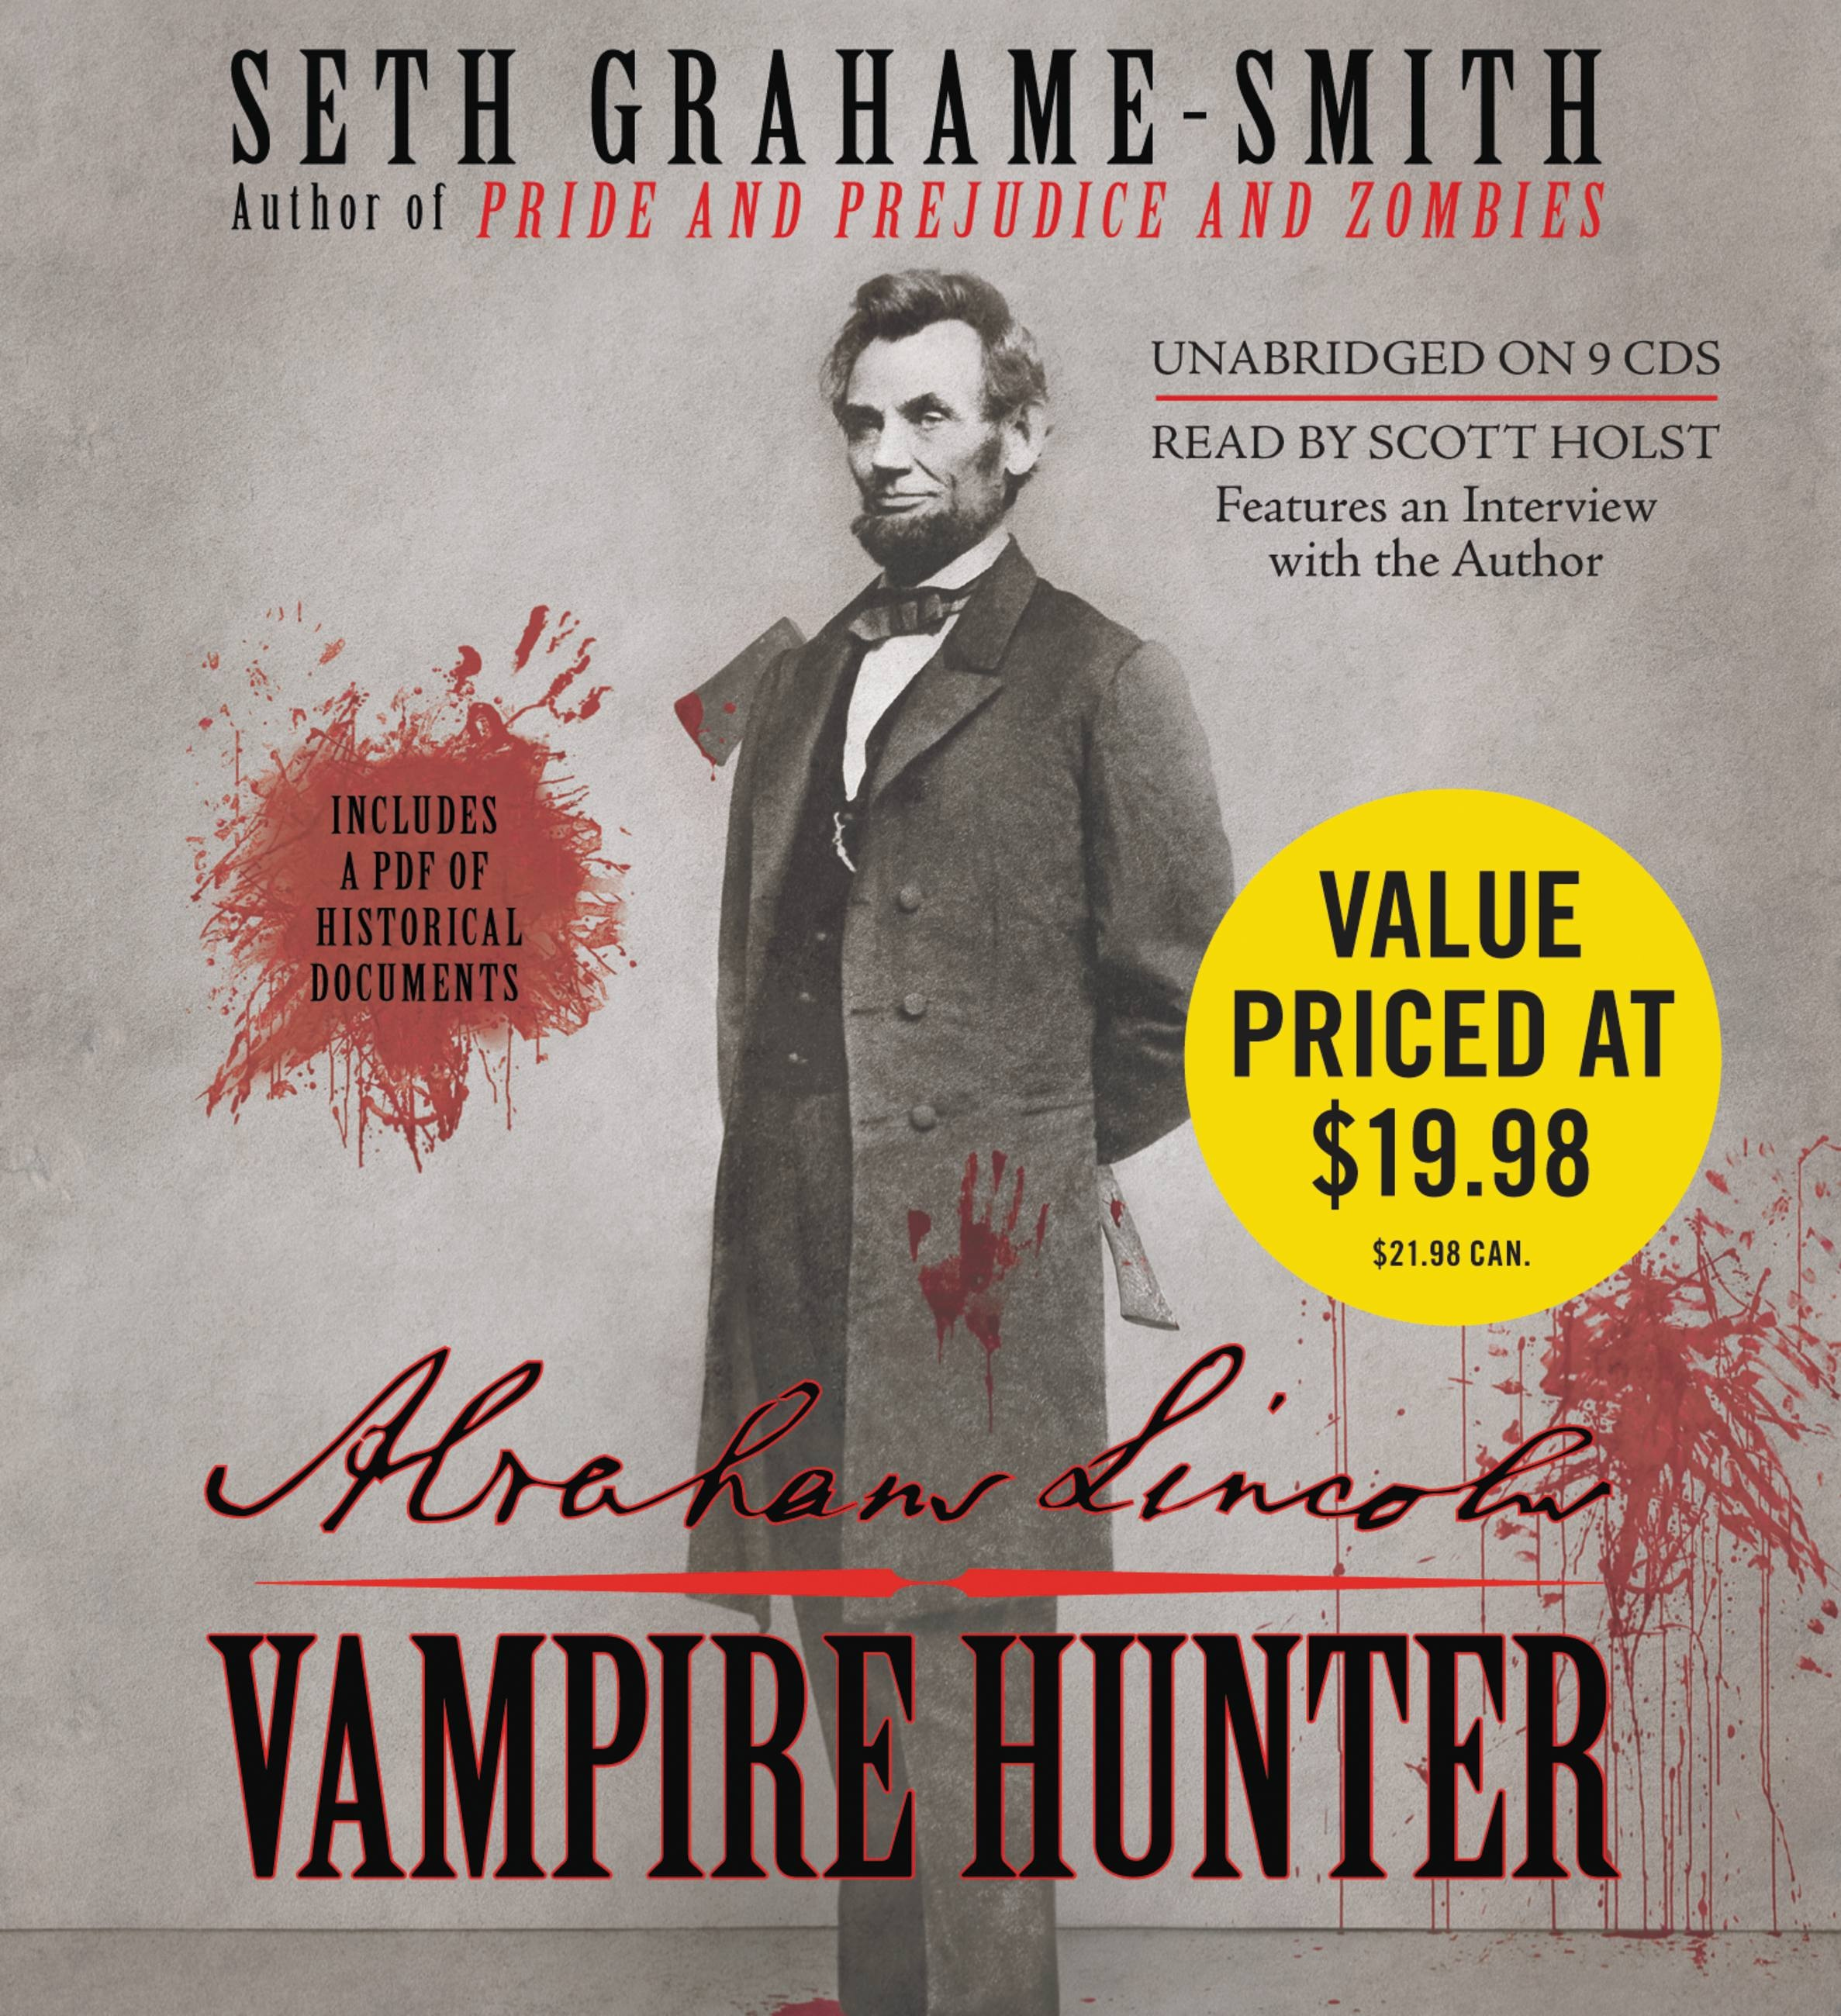 Abraham lincoln vampire hunter by seth grahame smith hachette abraham lincoln vampire hunter by seth grahame smith hachette book group fandeluxe Image collections